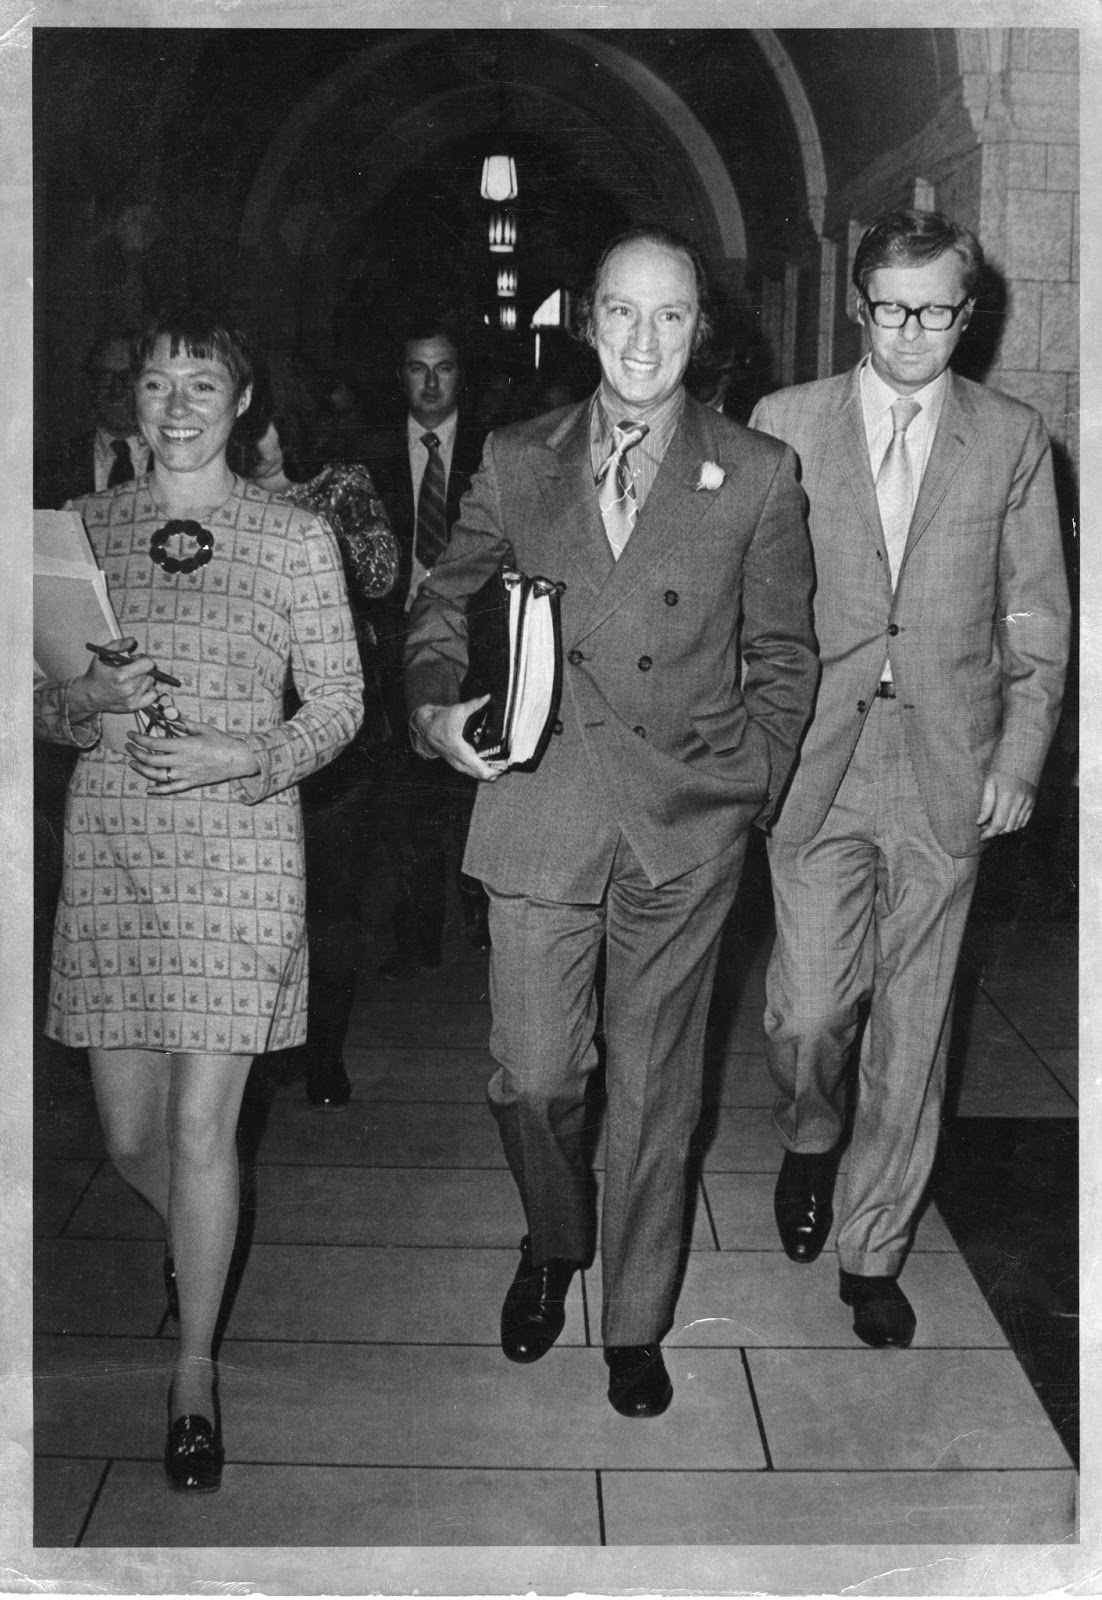 Joyce Fairbairn worked for Prime Minister Pierre Elliot Trudeau as a Legislative Assistant and, later, Senior Communication Coordinatoruntil 1984 when she became the firstSenator from Lethbridge, AB.